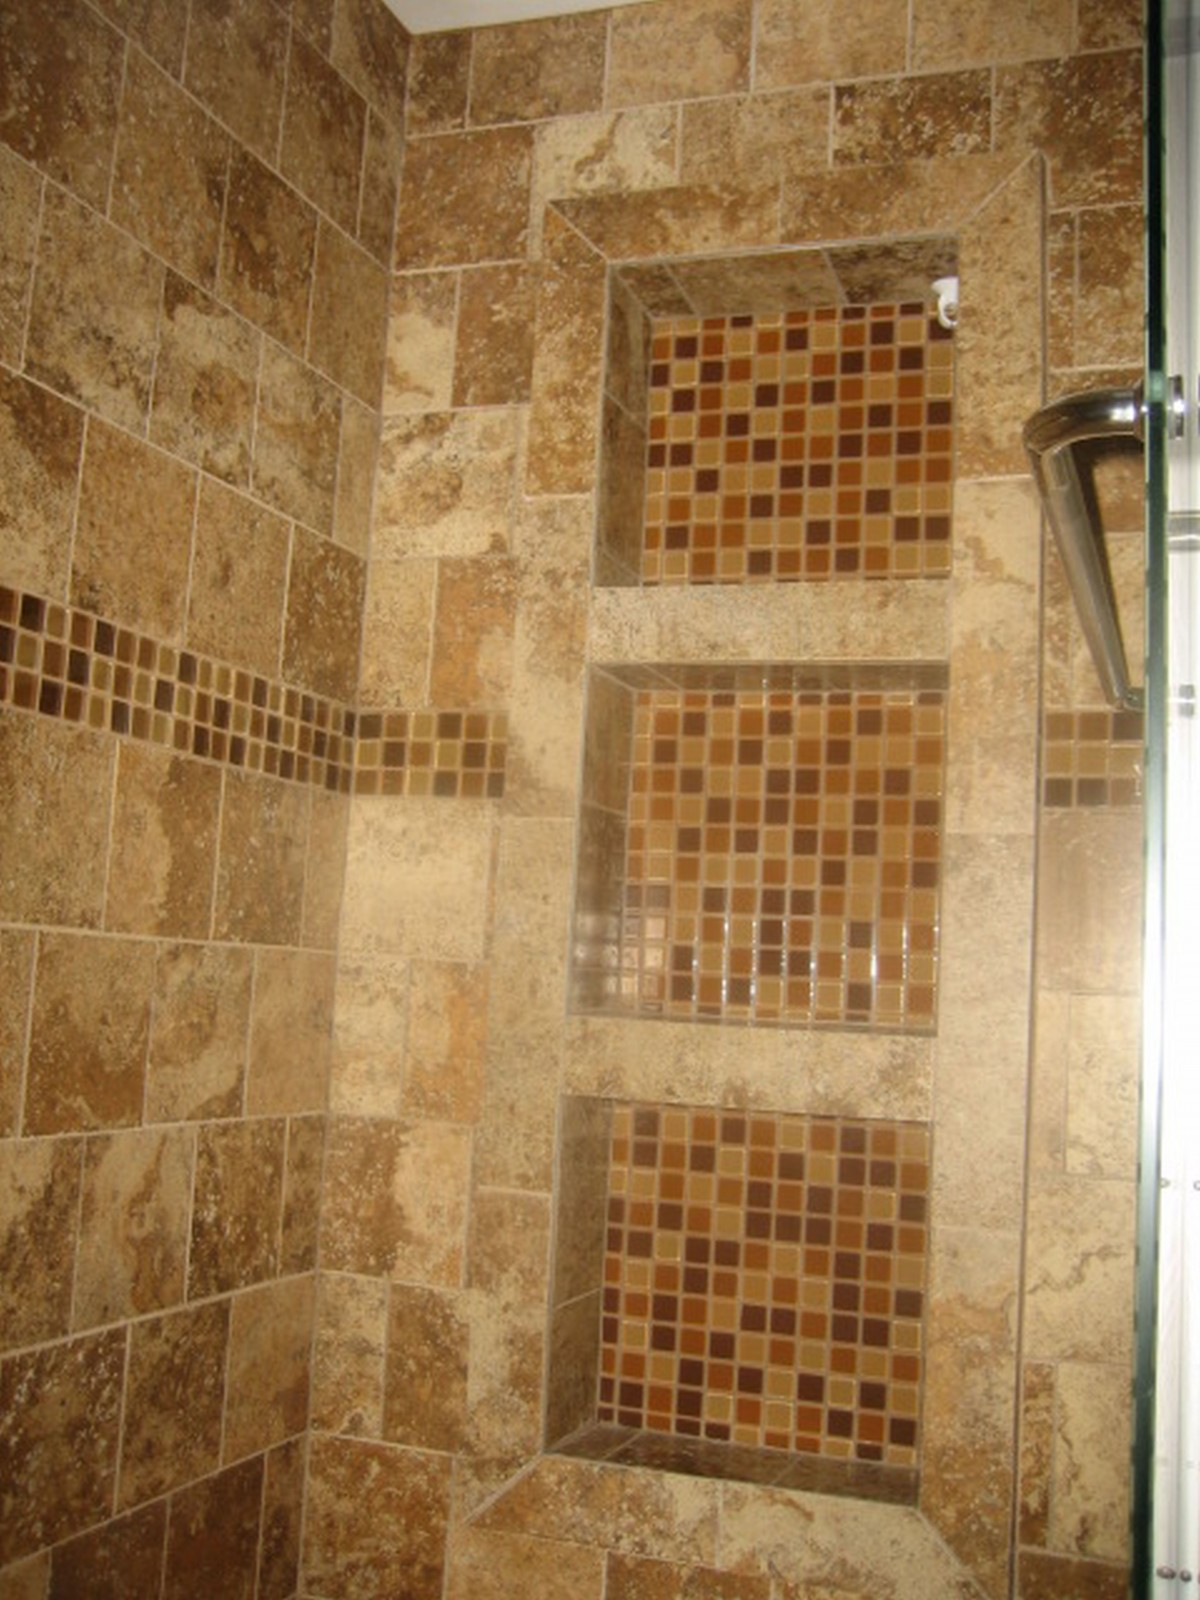 30 pictures of bathroom wall tile 12x12 11598